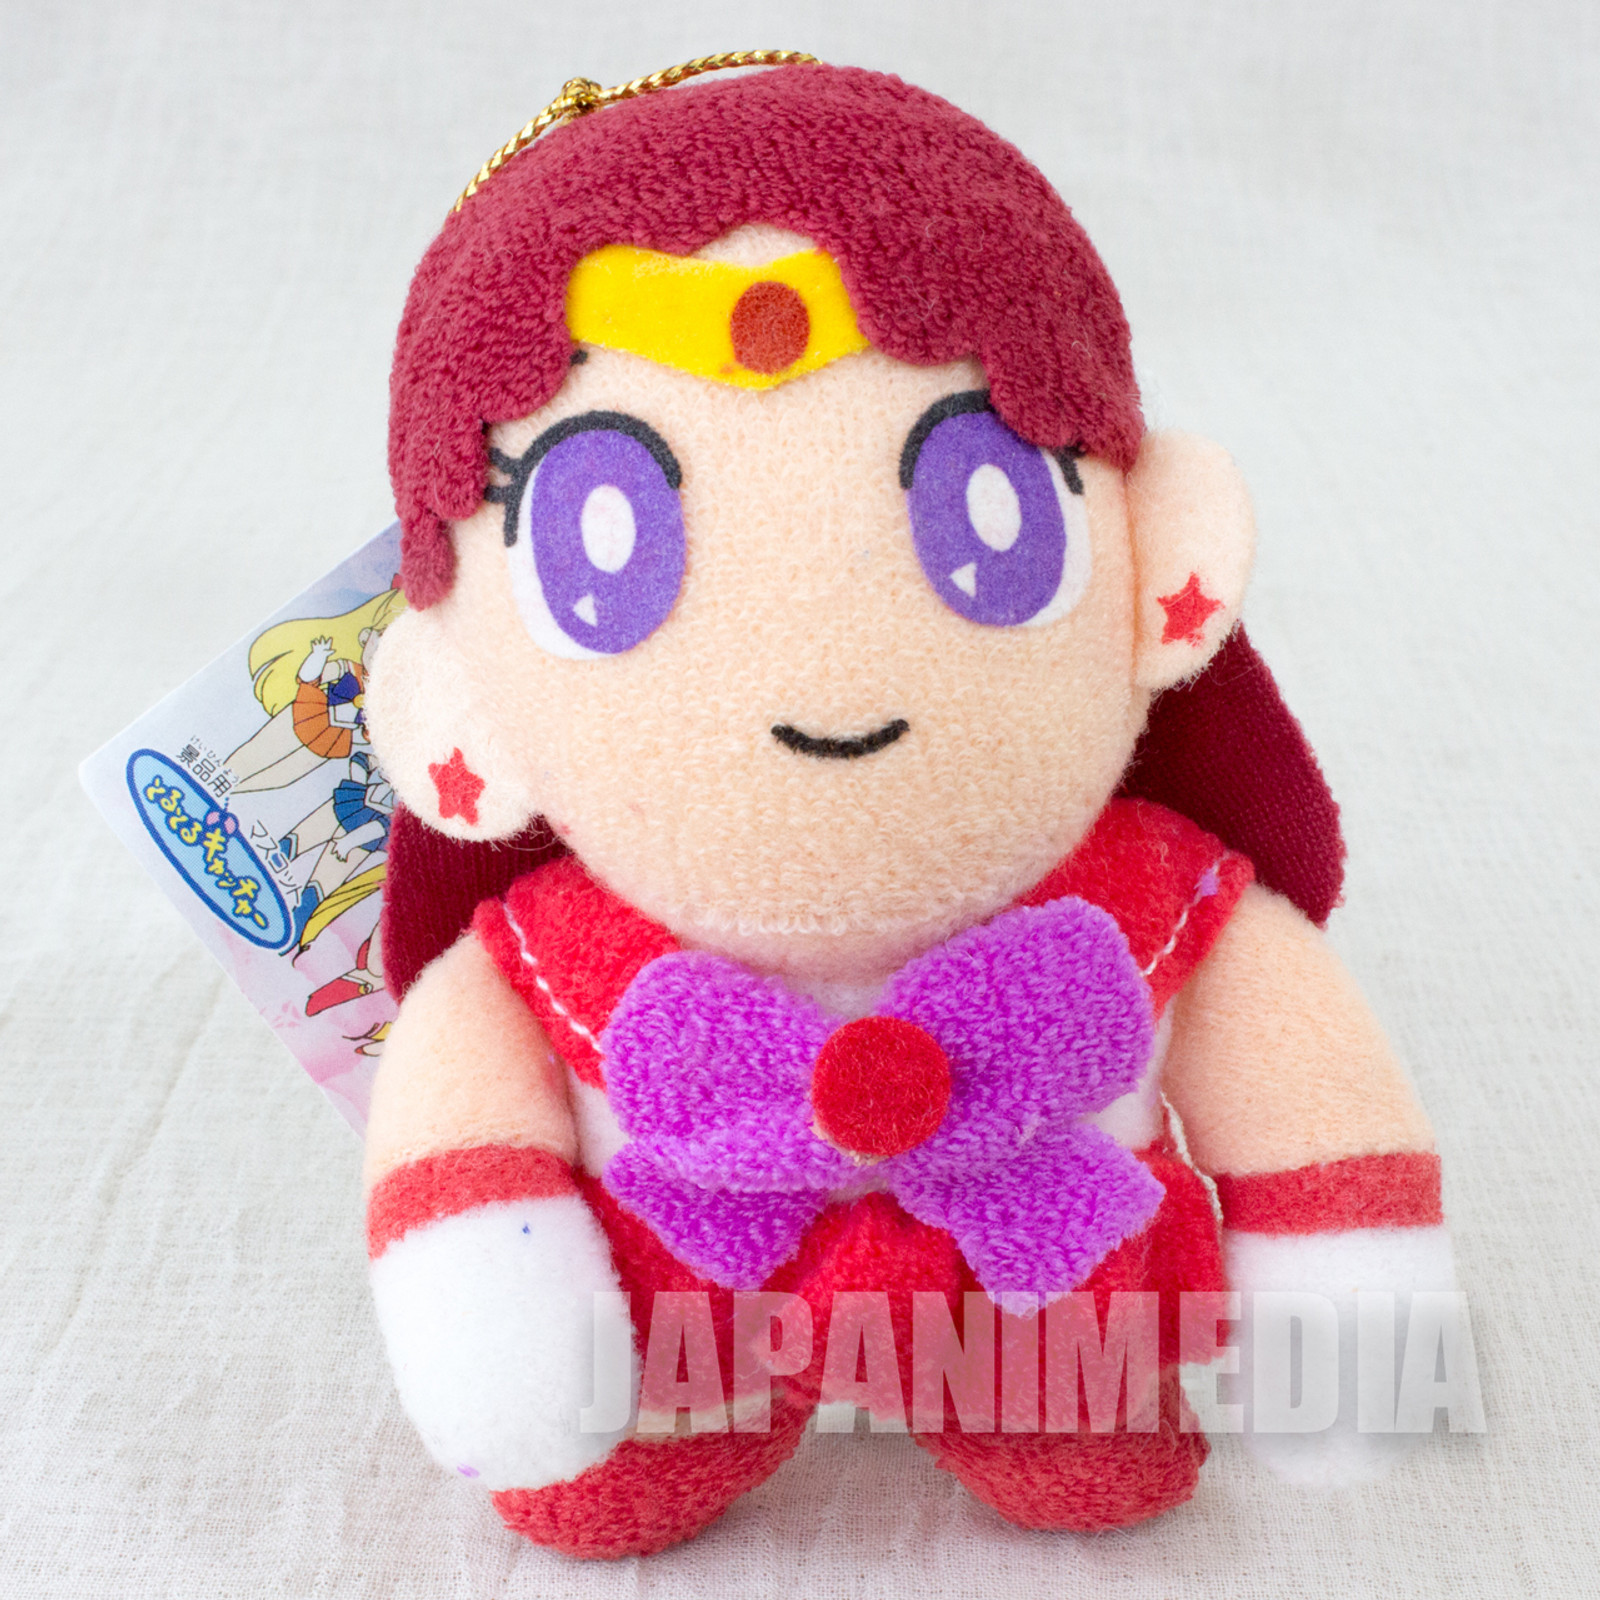 Sailor Moon Sailor Mars (Rei Hino) Mini Plush Doll Mascot JAPAN ANIME MANGA